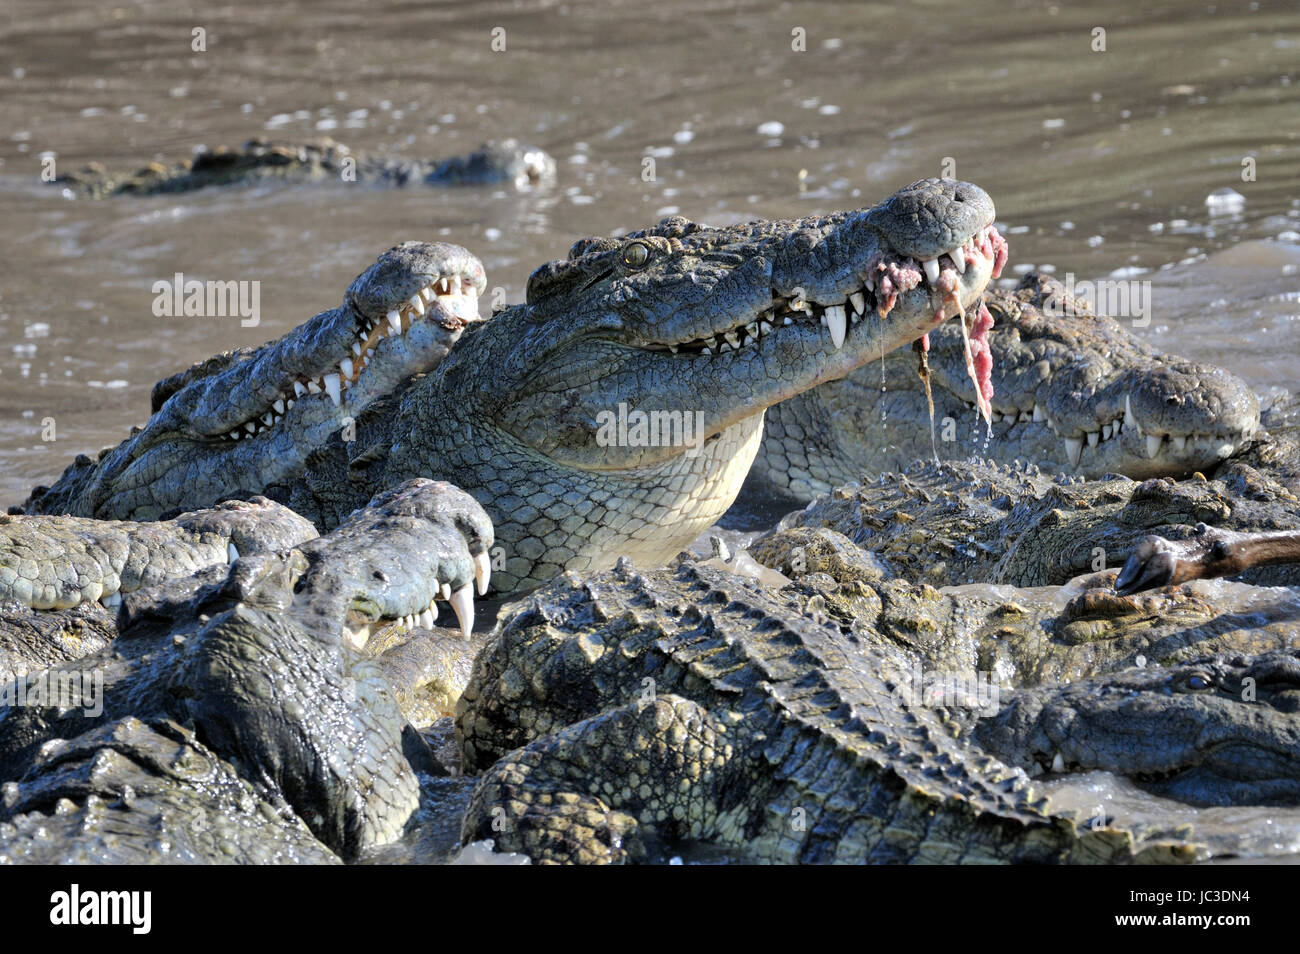 Nile Crocodiles (Crocodylus niloticus) eating, Grumeti river, Serengeti National Park, Tanzania. - Stock Image